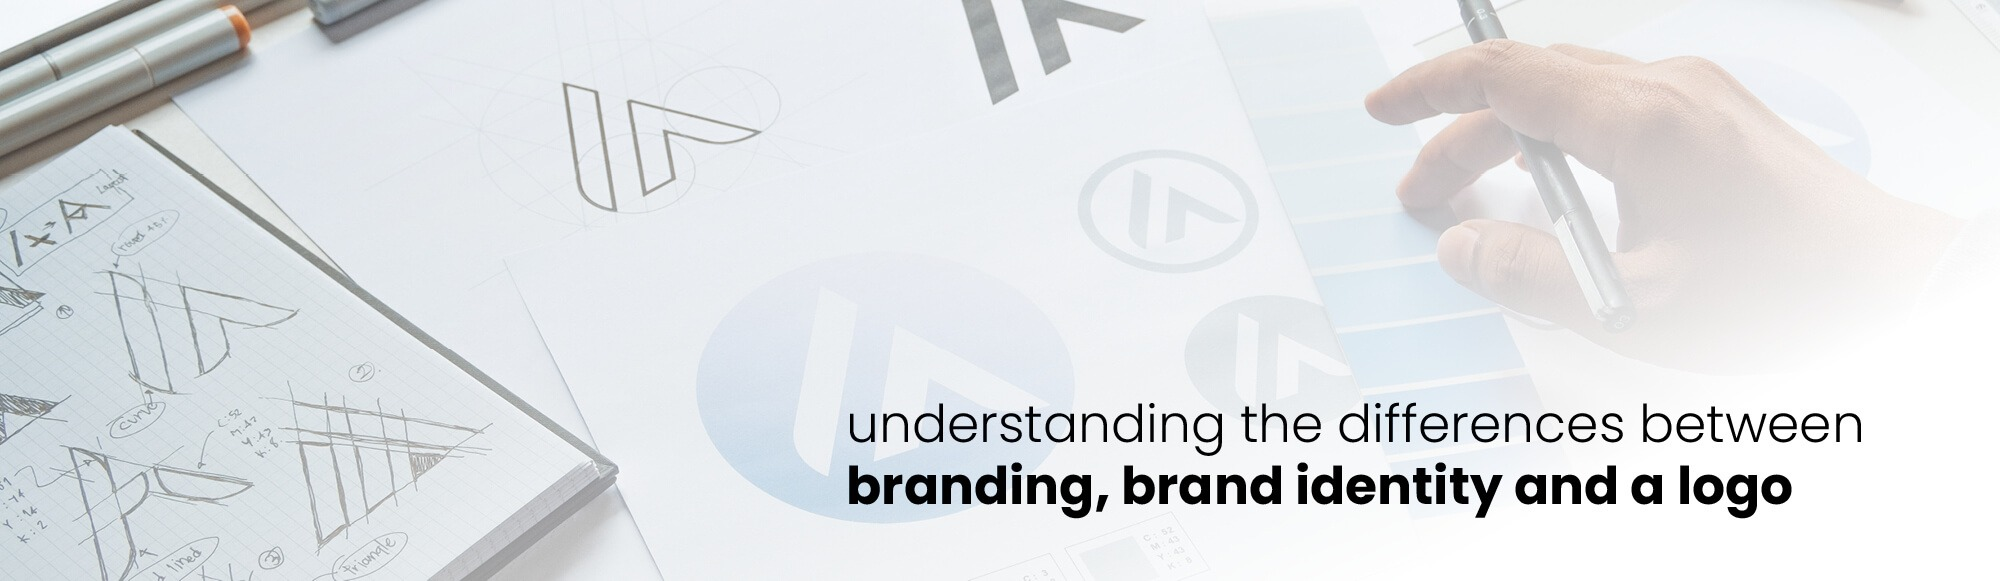 What's the Difference Between Branding, Brand Identity, and Logos?